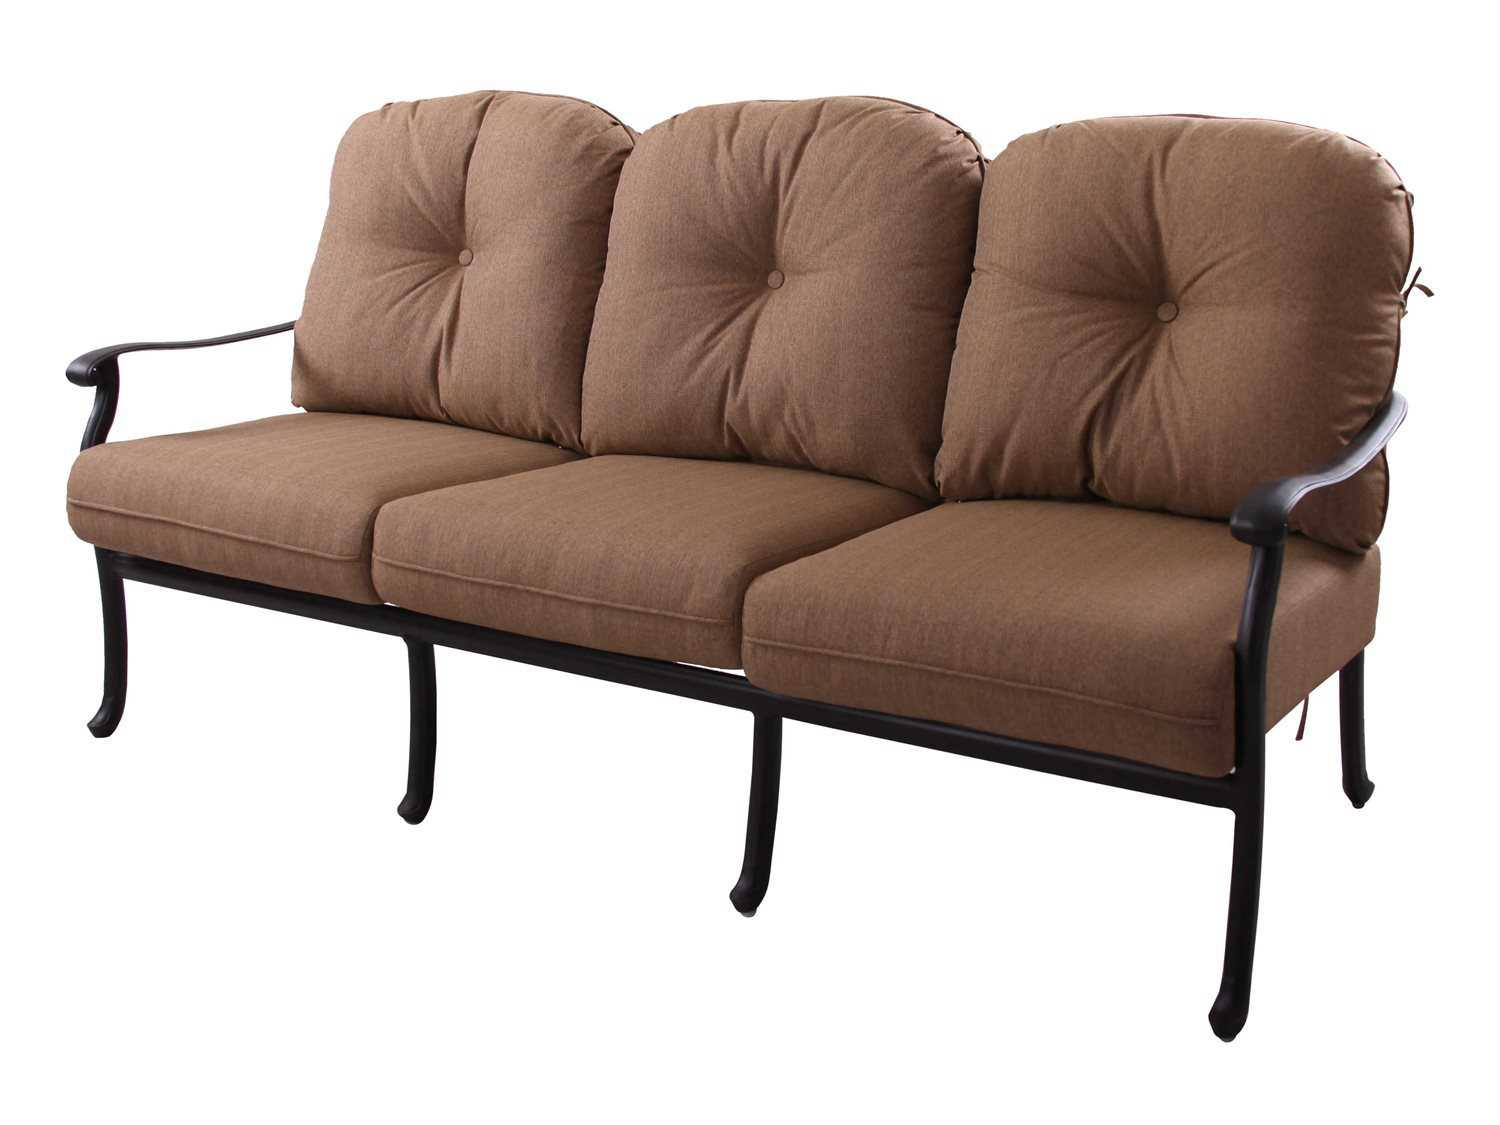 replacement cushions for sofa backs lounger darlee outdoor living standard sedona